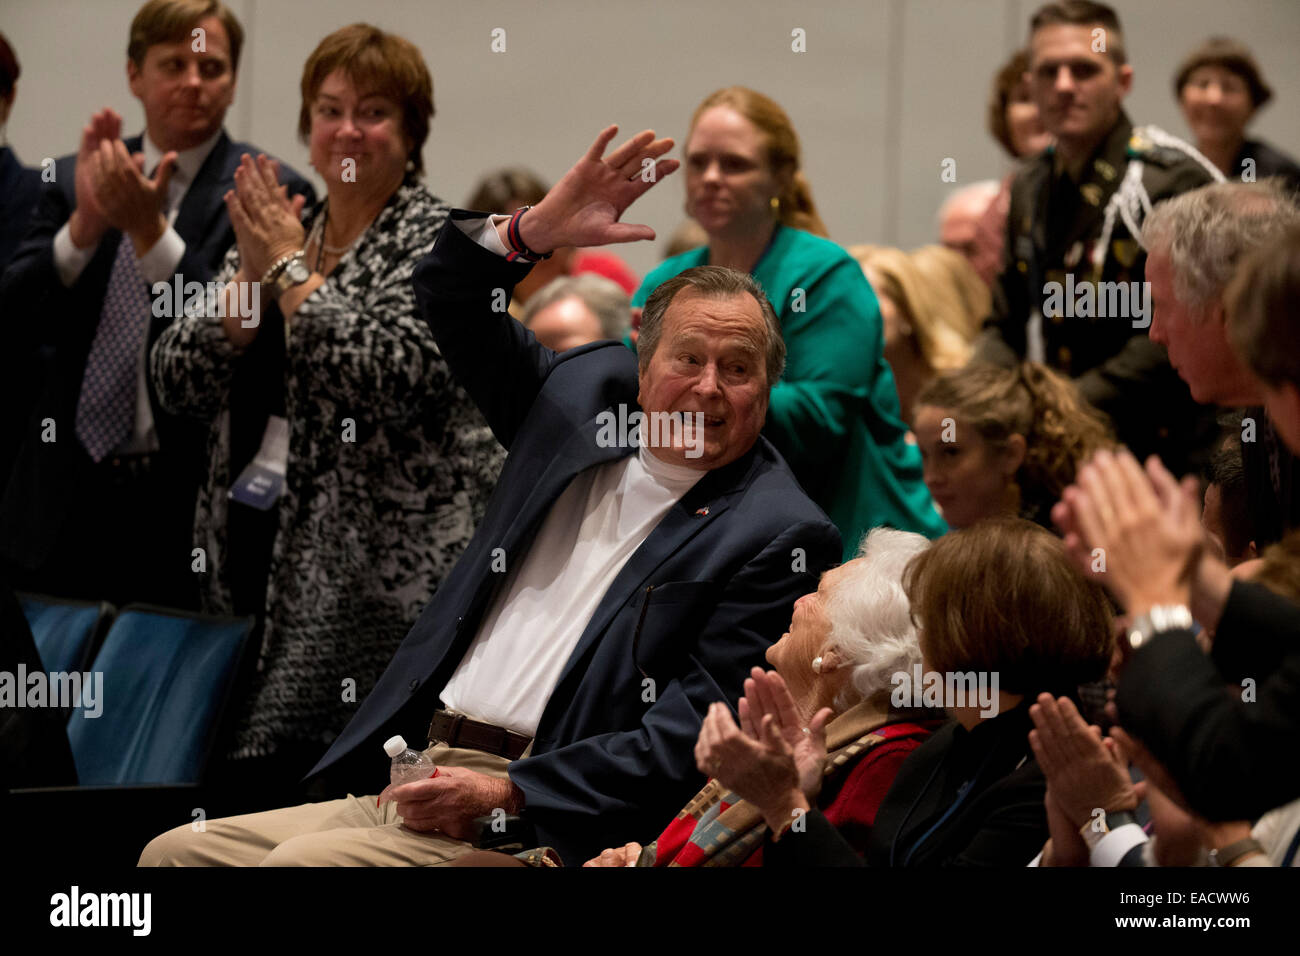 """College Station, Texas, USA. 11th November, 2014. Former U.S. President George H. W. Bush listens with his wife Barbara Bush as his son former President George W. Bush talks about his new book, """"41_A Portrait of My Father""""  during a book event at the Bush Library at Texas A&M University. Credit:  Bob Daemmrich/Alamy Live News Stock Photo"""